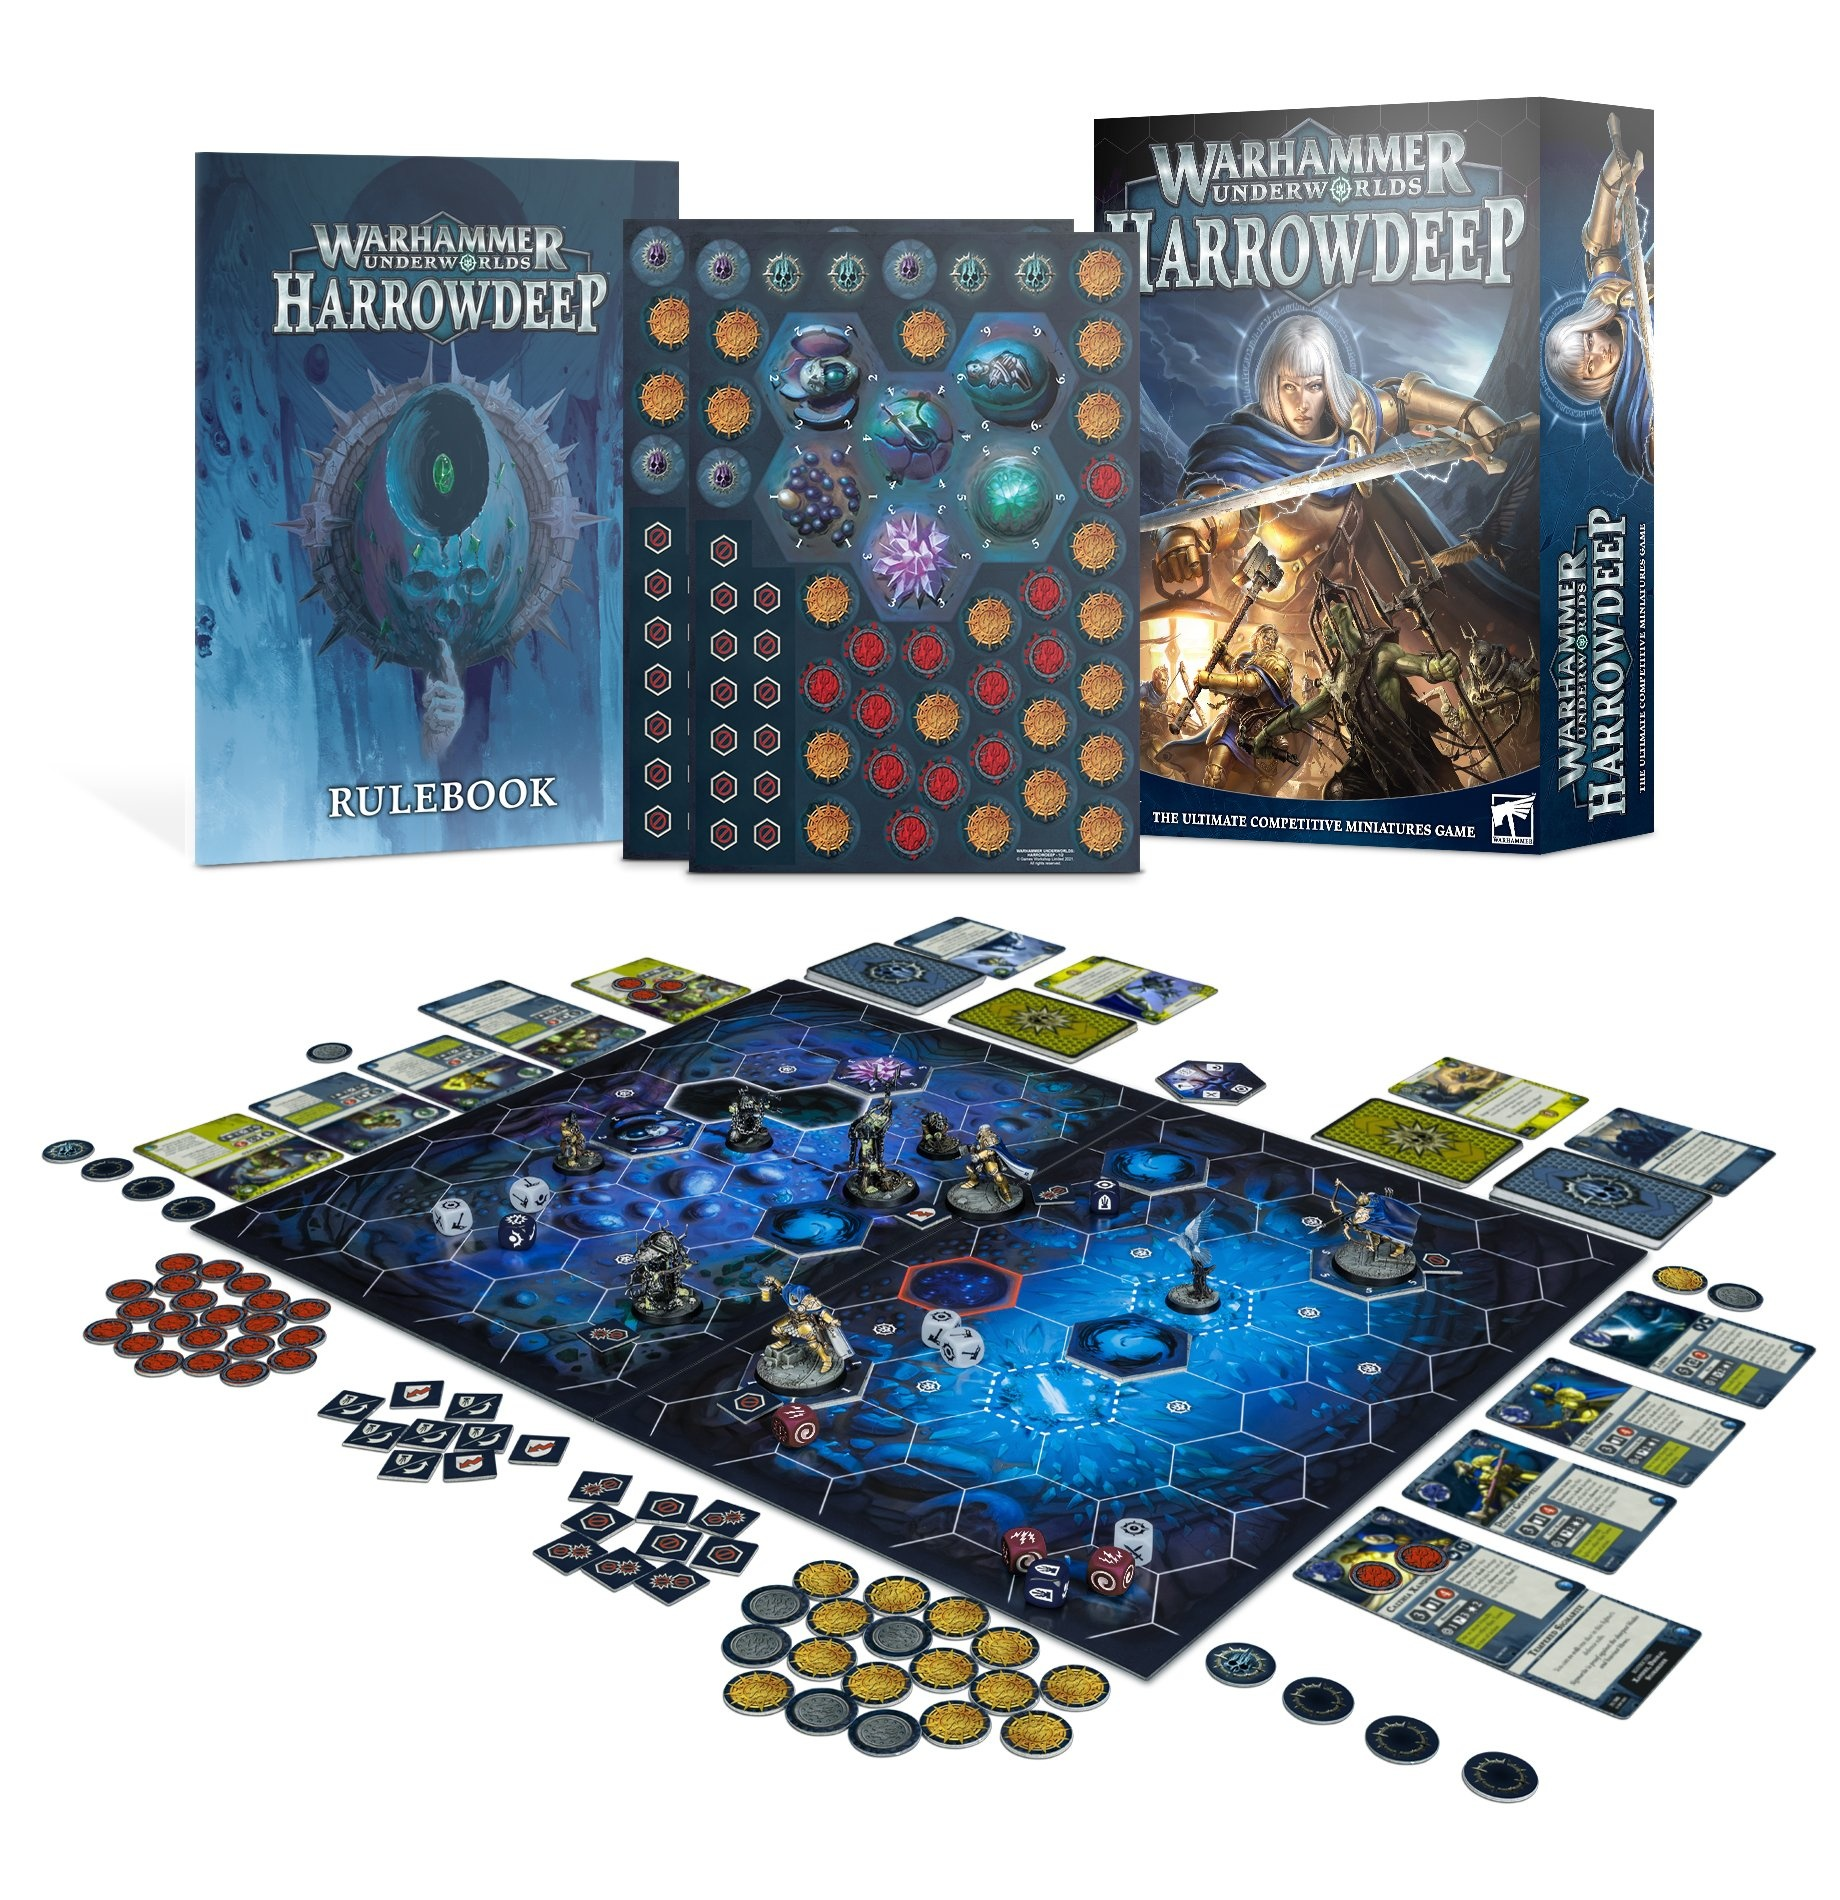 Games Workshop new releases now in stock!